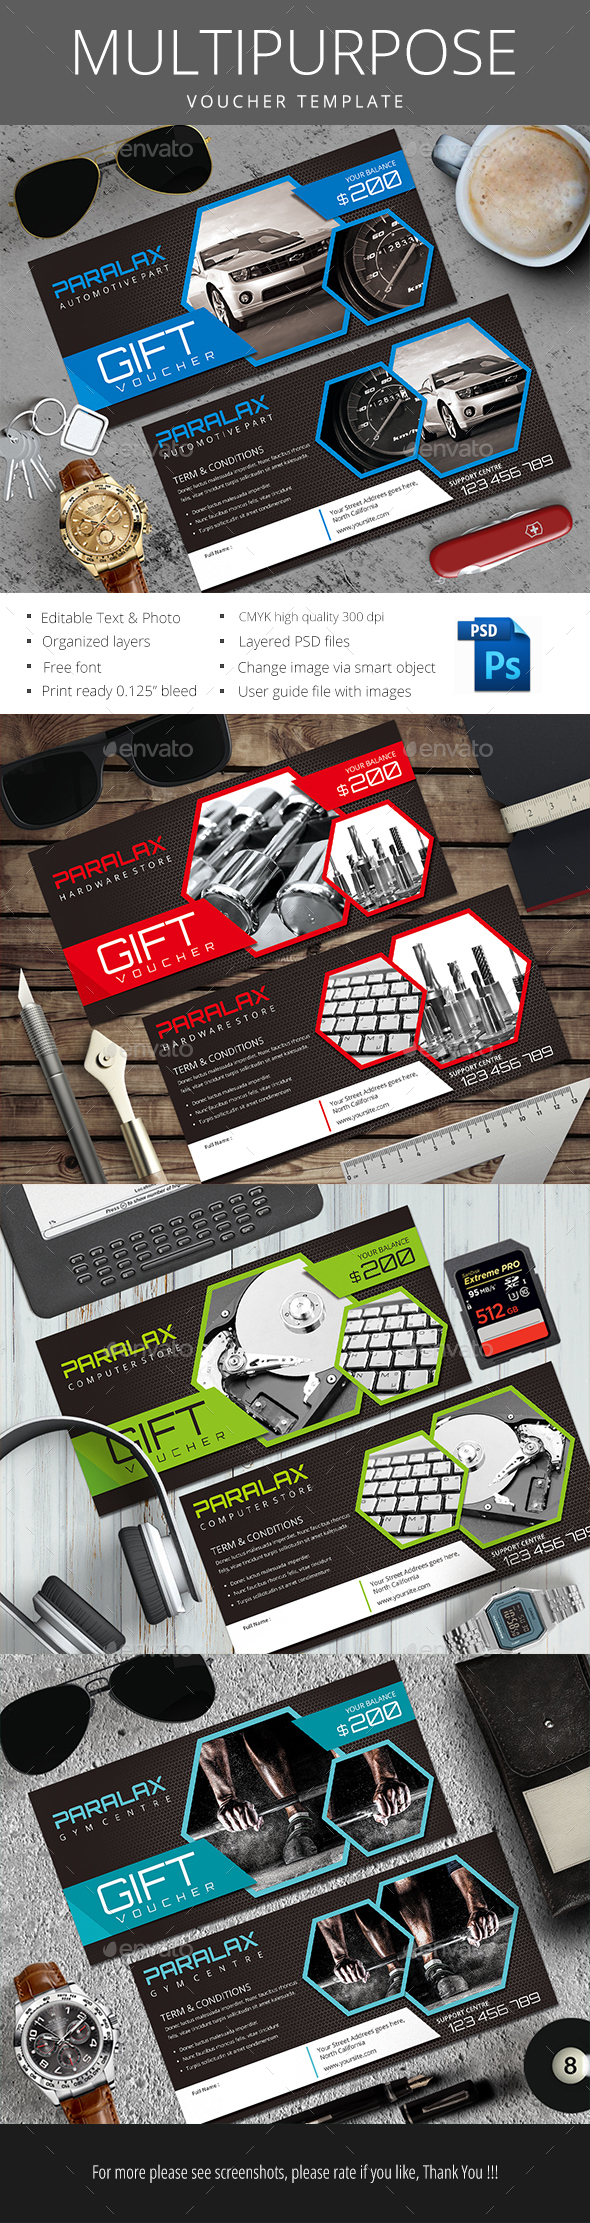 Multi Purpose Gift Voucher - Loyalty Cards Cards & Invites